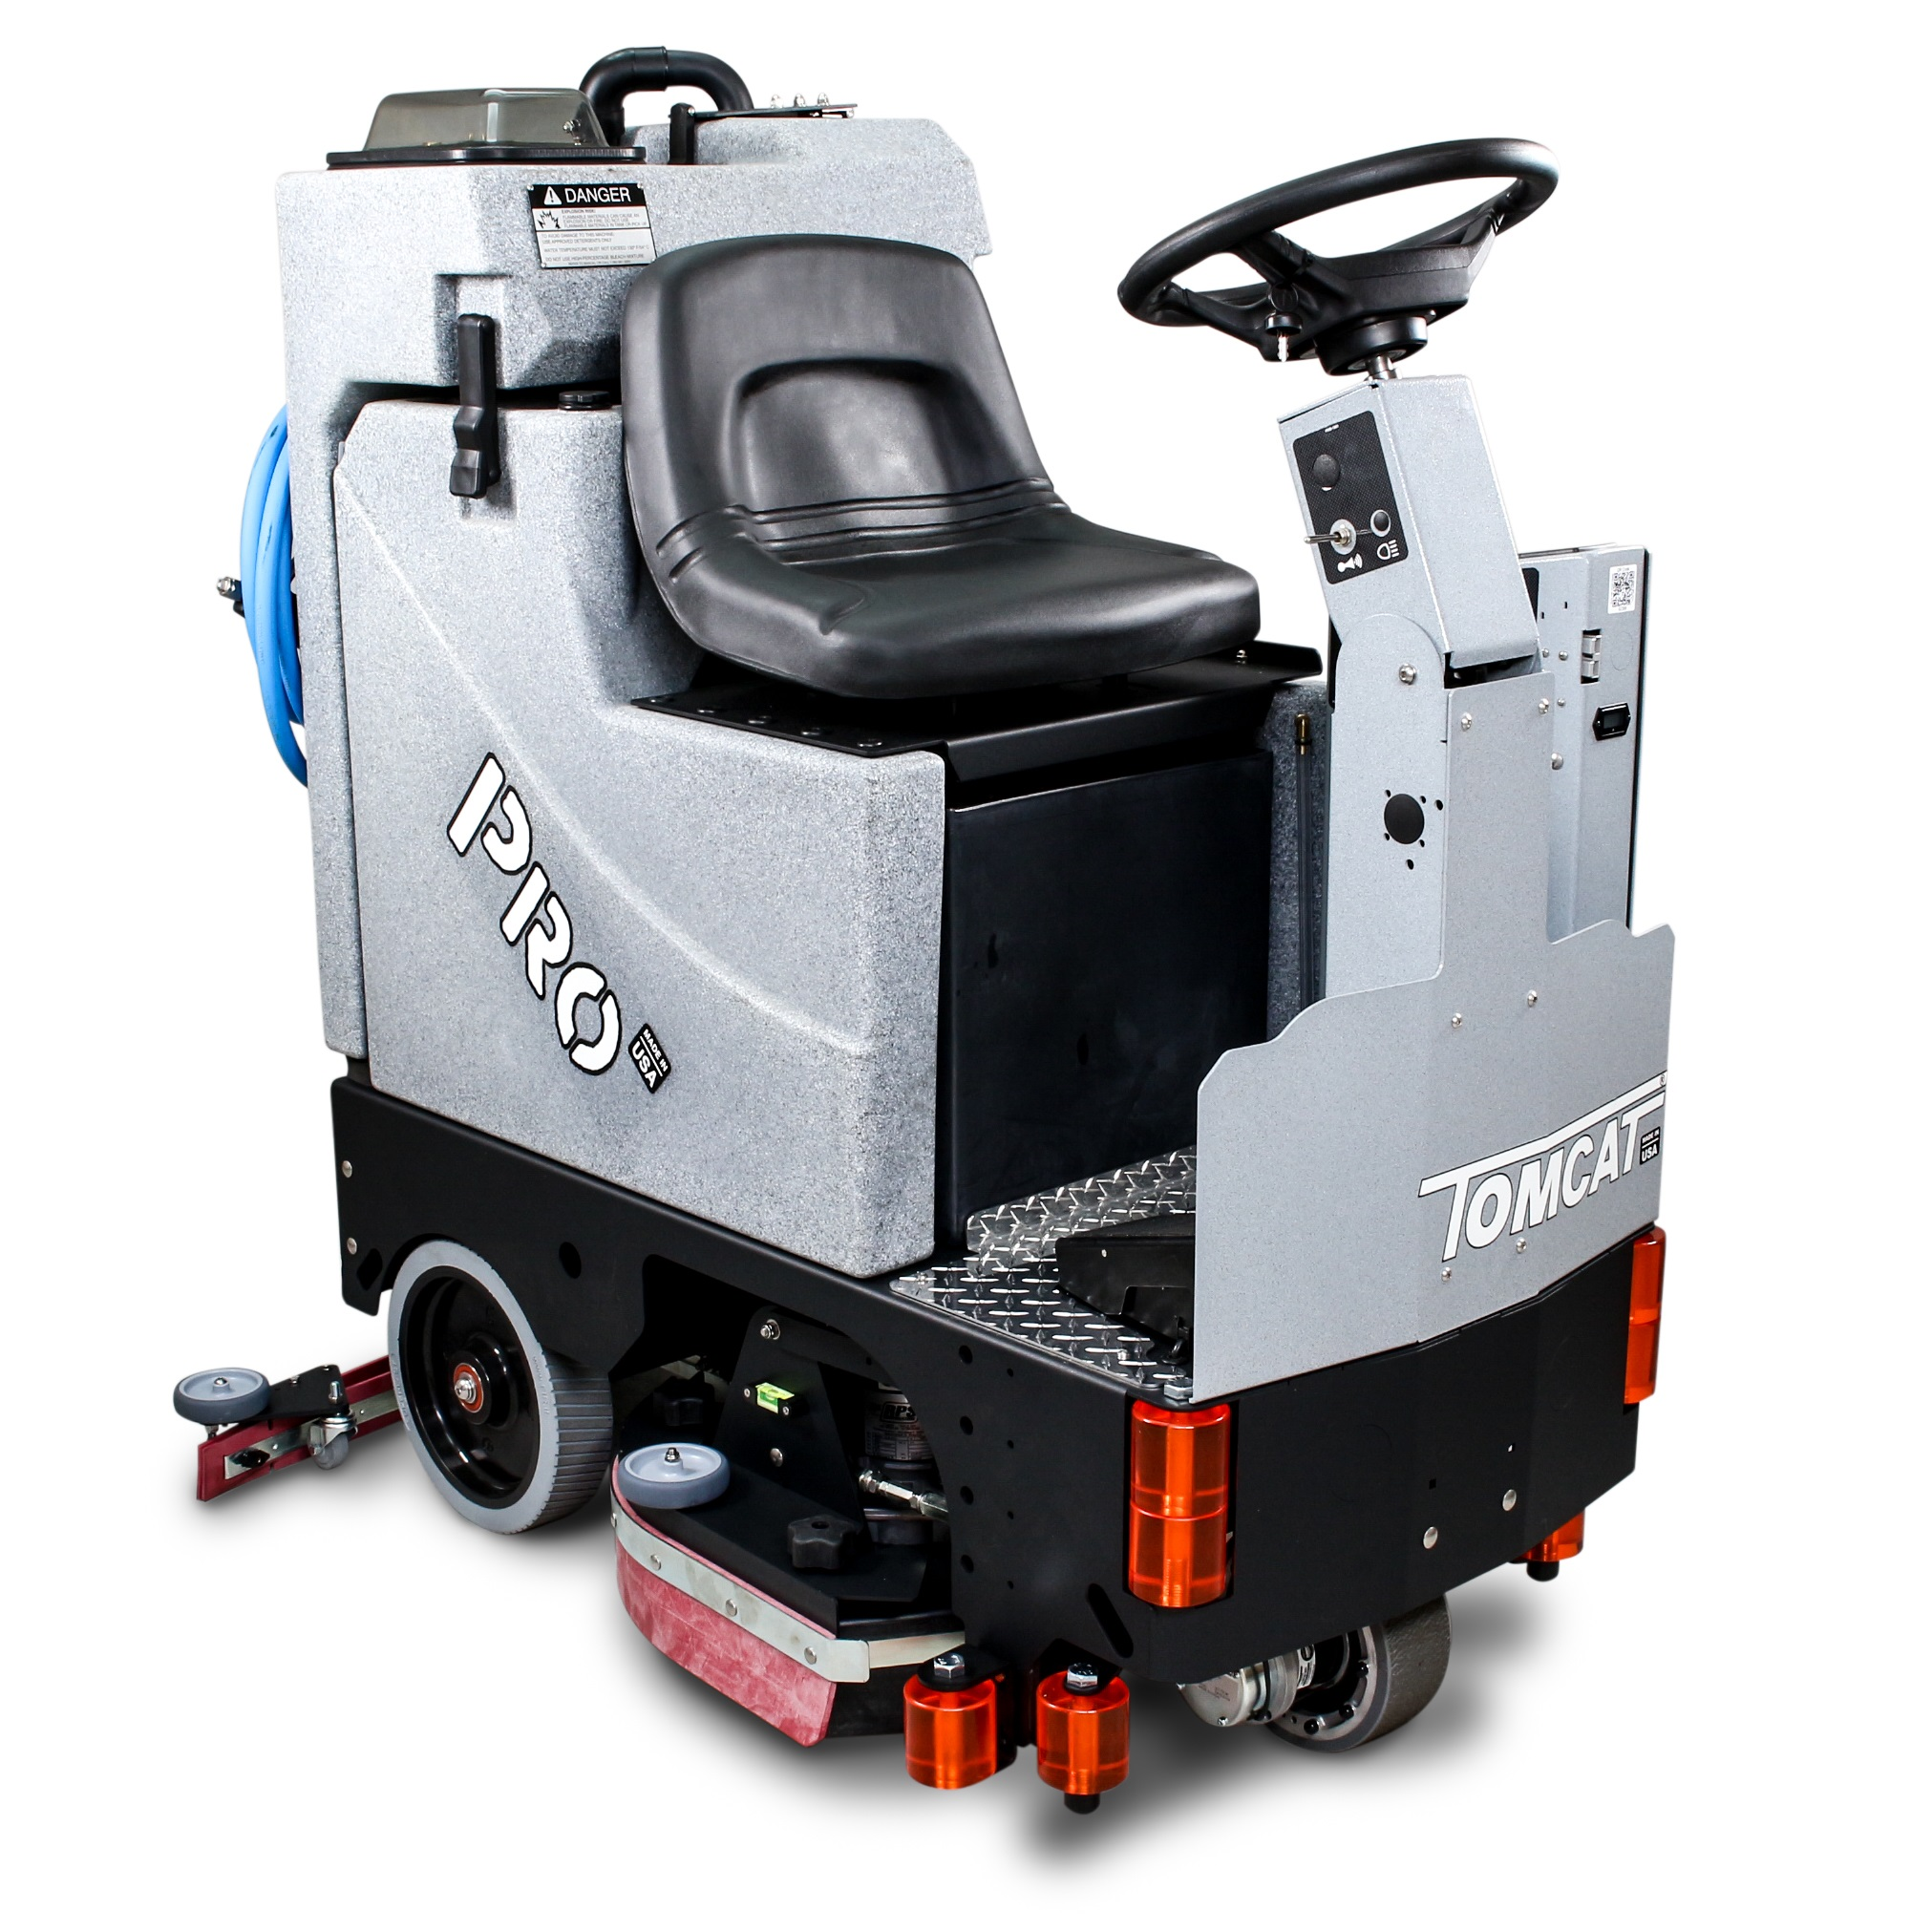 Compact yet powerful ride-on scrubber with the EDGE scrub system.